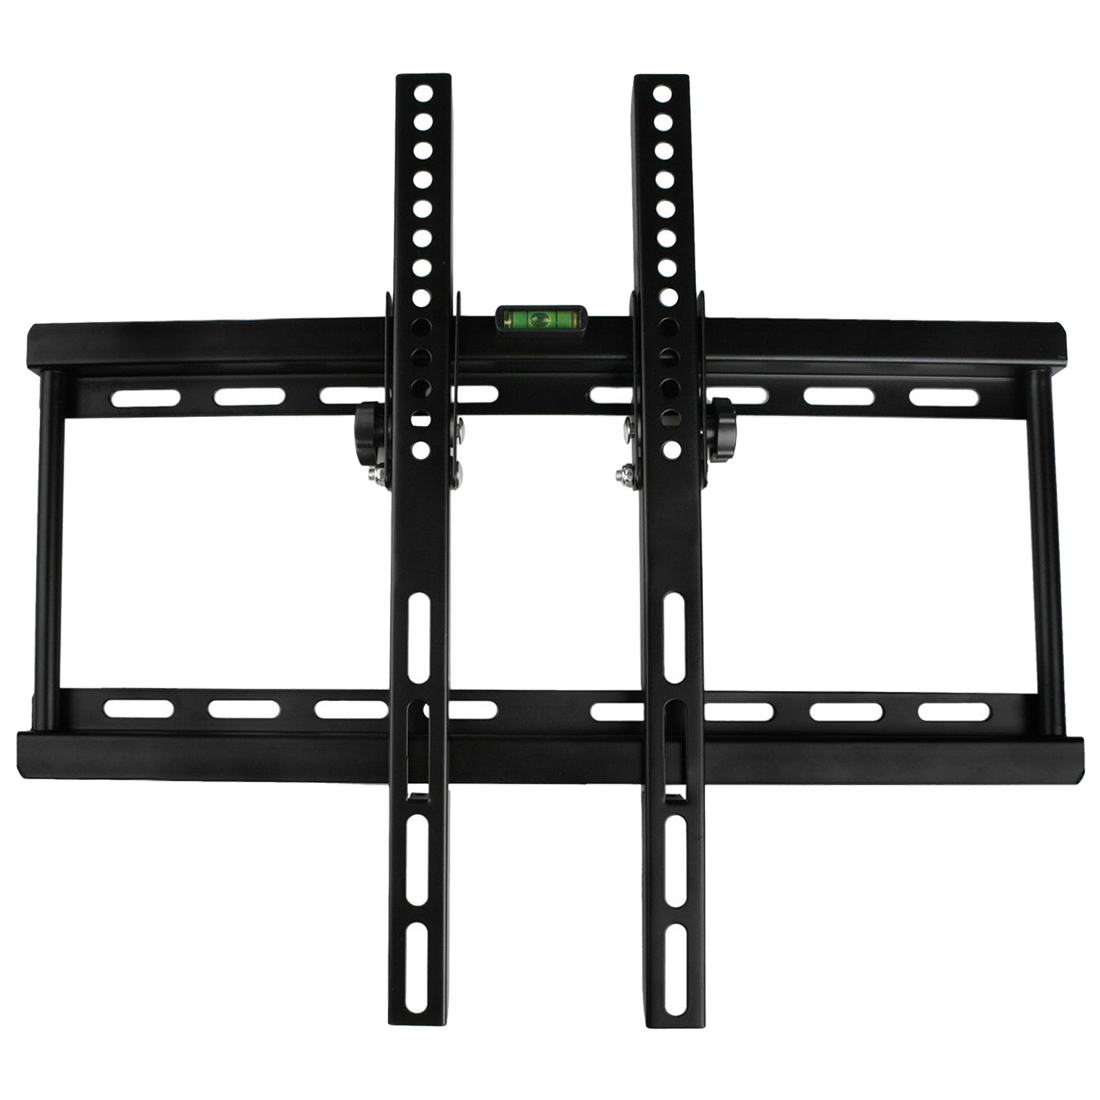 Home Improvement Bathroom Shelves Cooperative Ksol Flat Slim Tv Wall Mount Bracket 23 28 30 32 40 42 48 50 55 Inch Led Lcd Plasma Beneficial To Essential Medulla